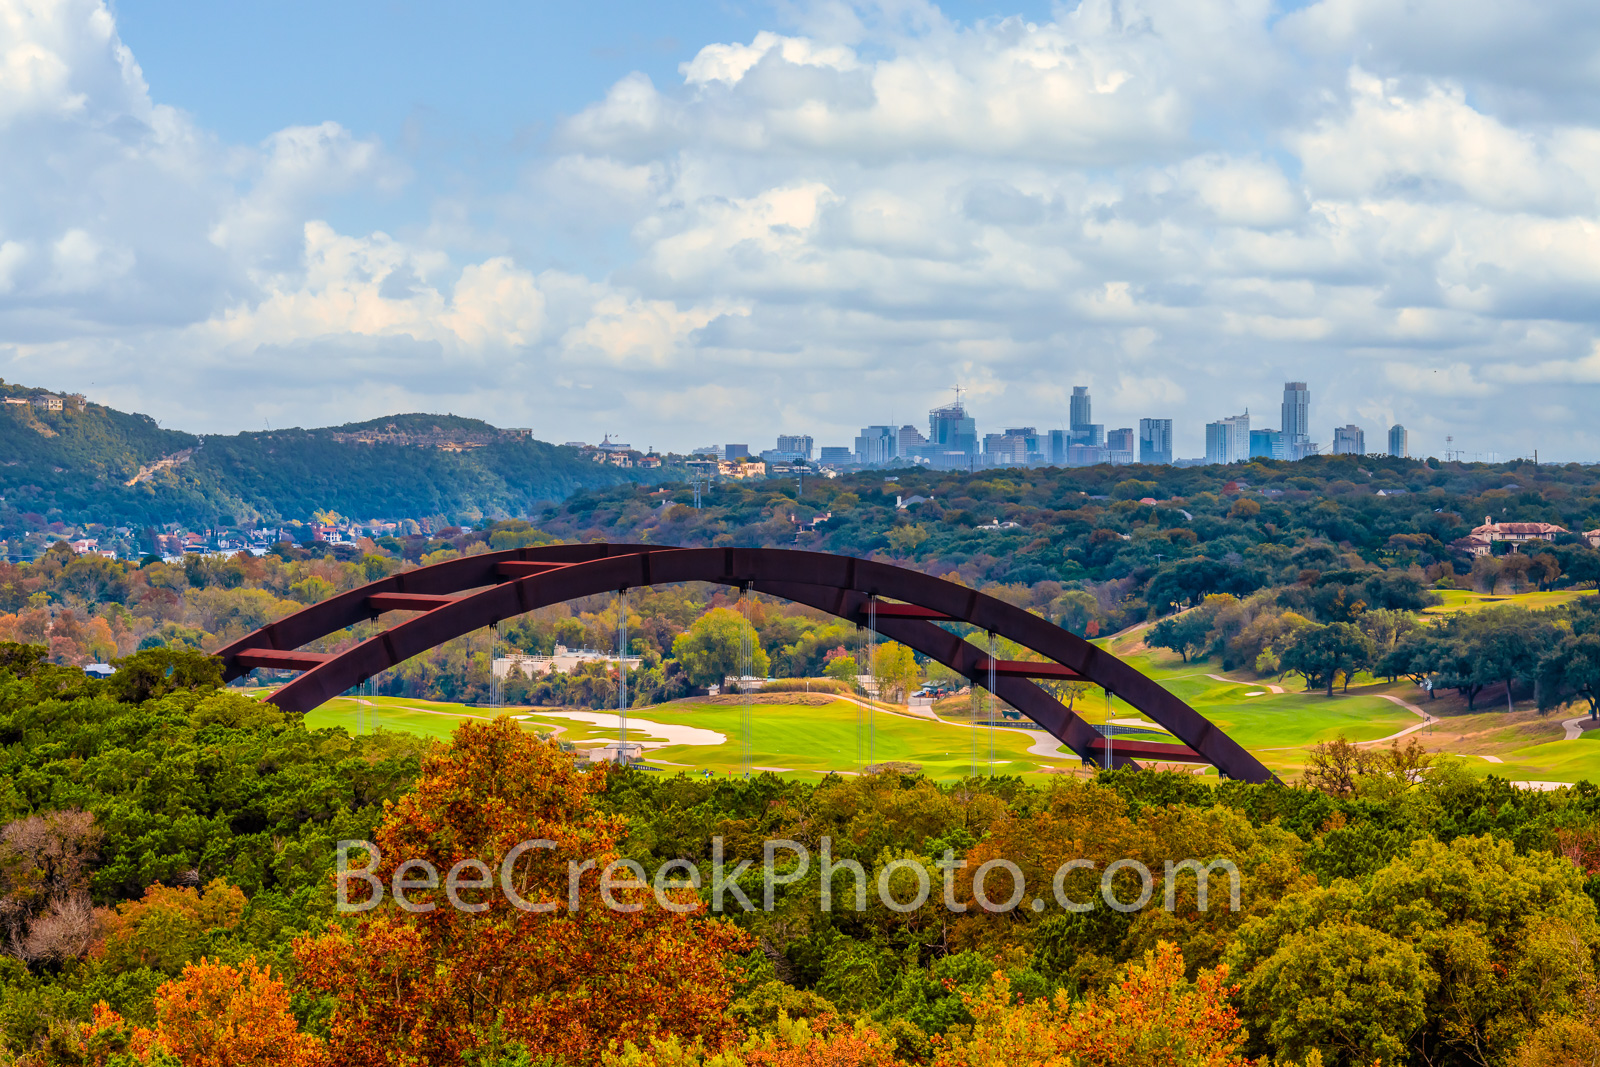 Pennybacker Bridge Autumn -  We capture this photo of the Austin downtown in the background with the Pennybacker Bridge or 360...